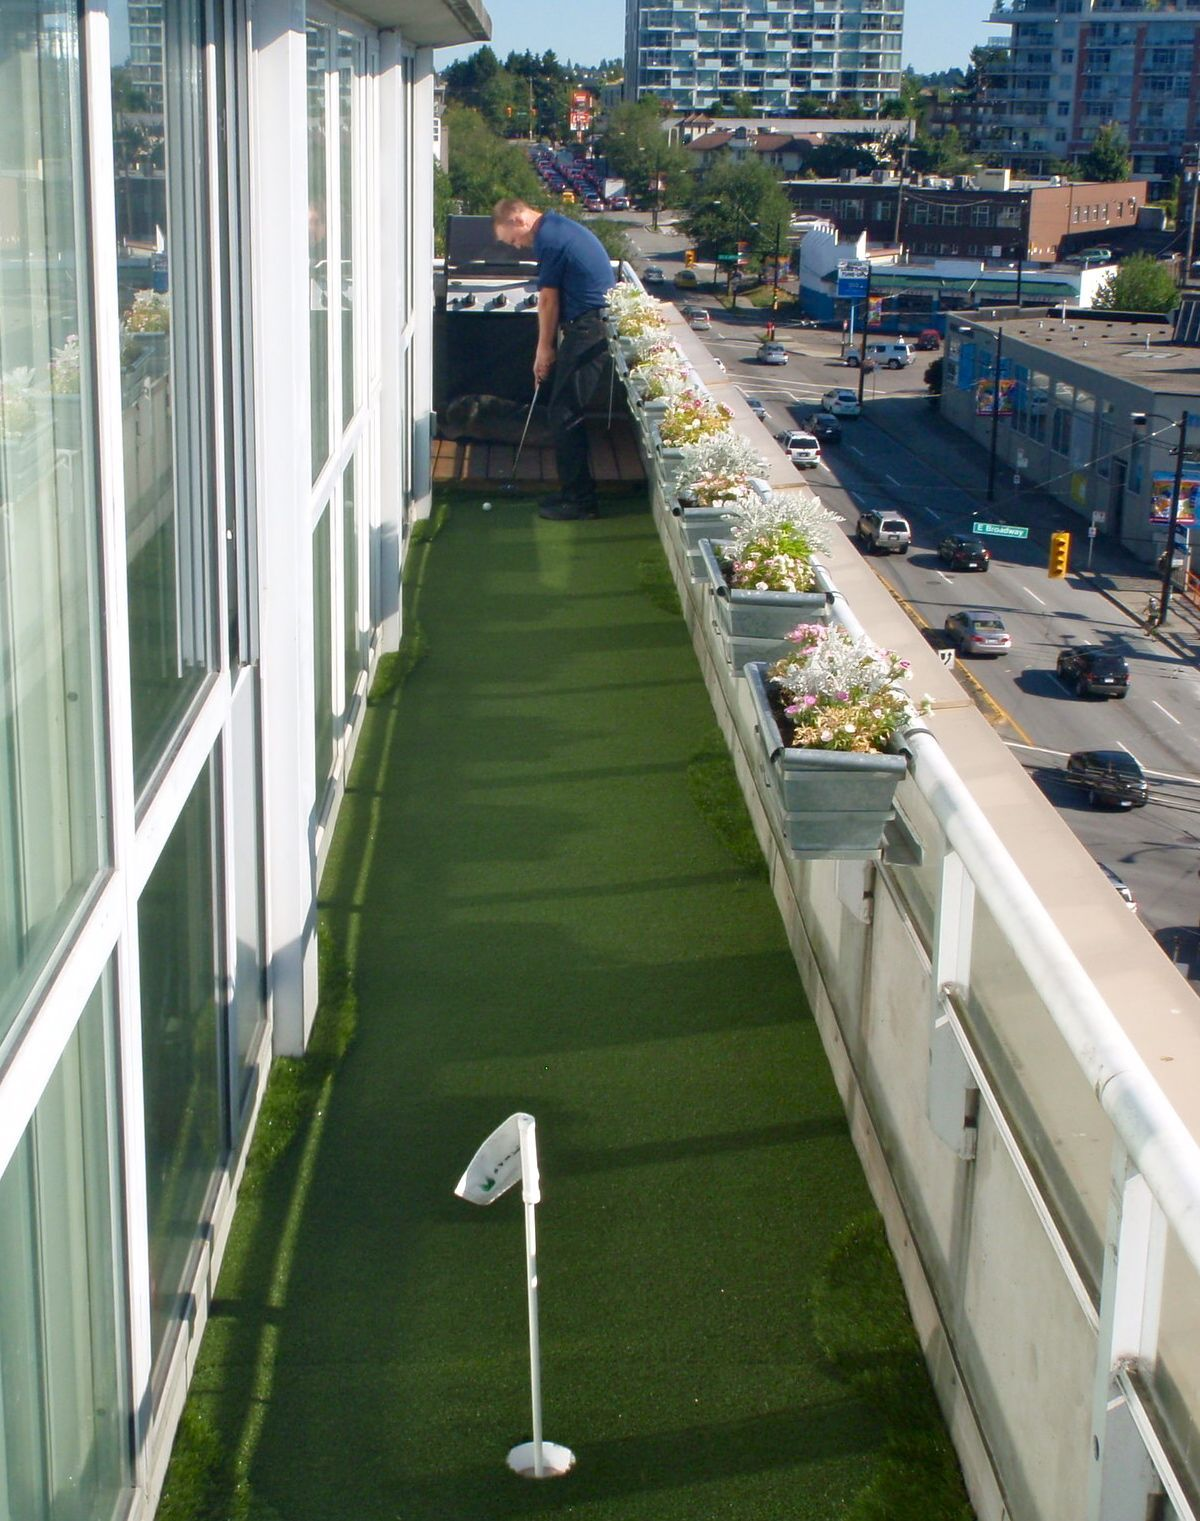 Balcony putting green to practice skills putting